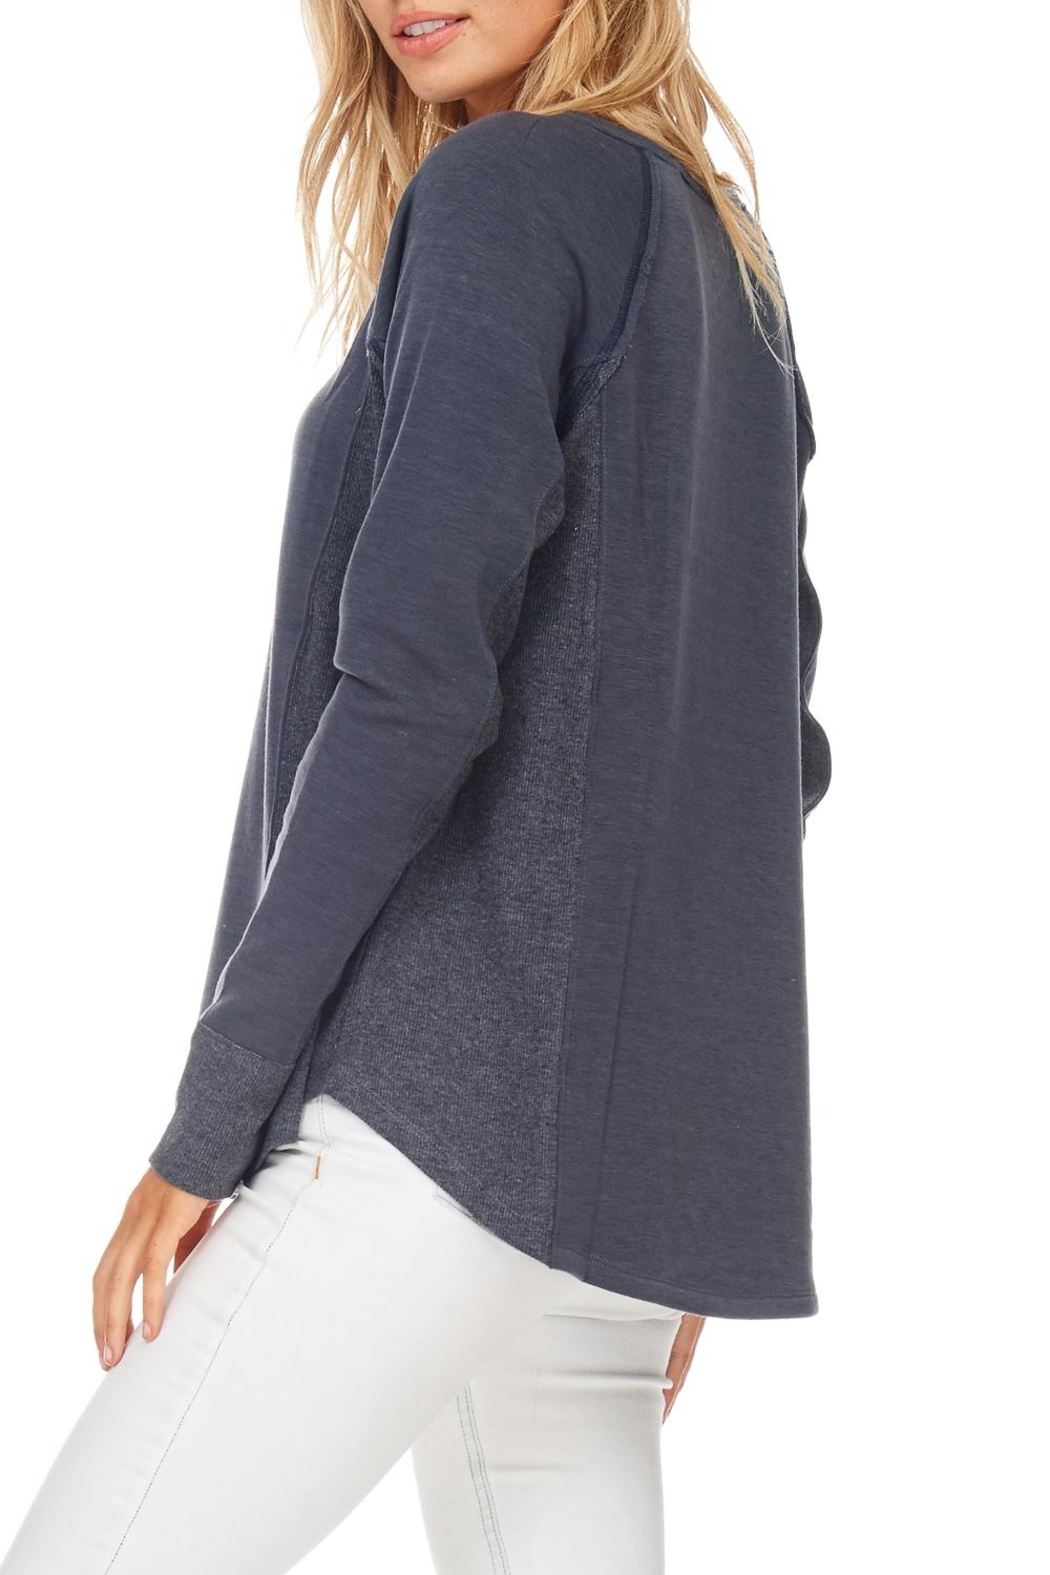 Hem & Thread Navy Stitched Pullover Top - Side Cropped Image